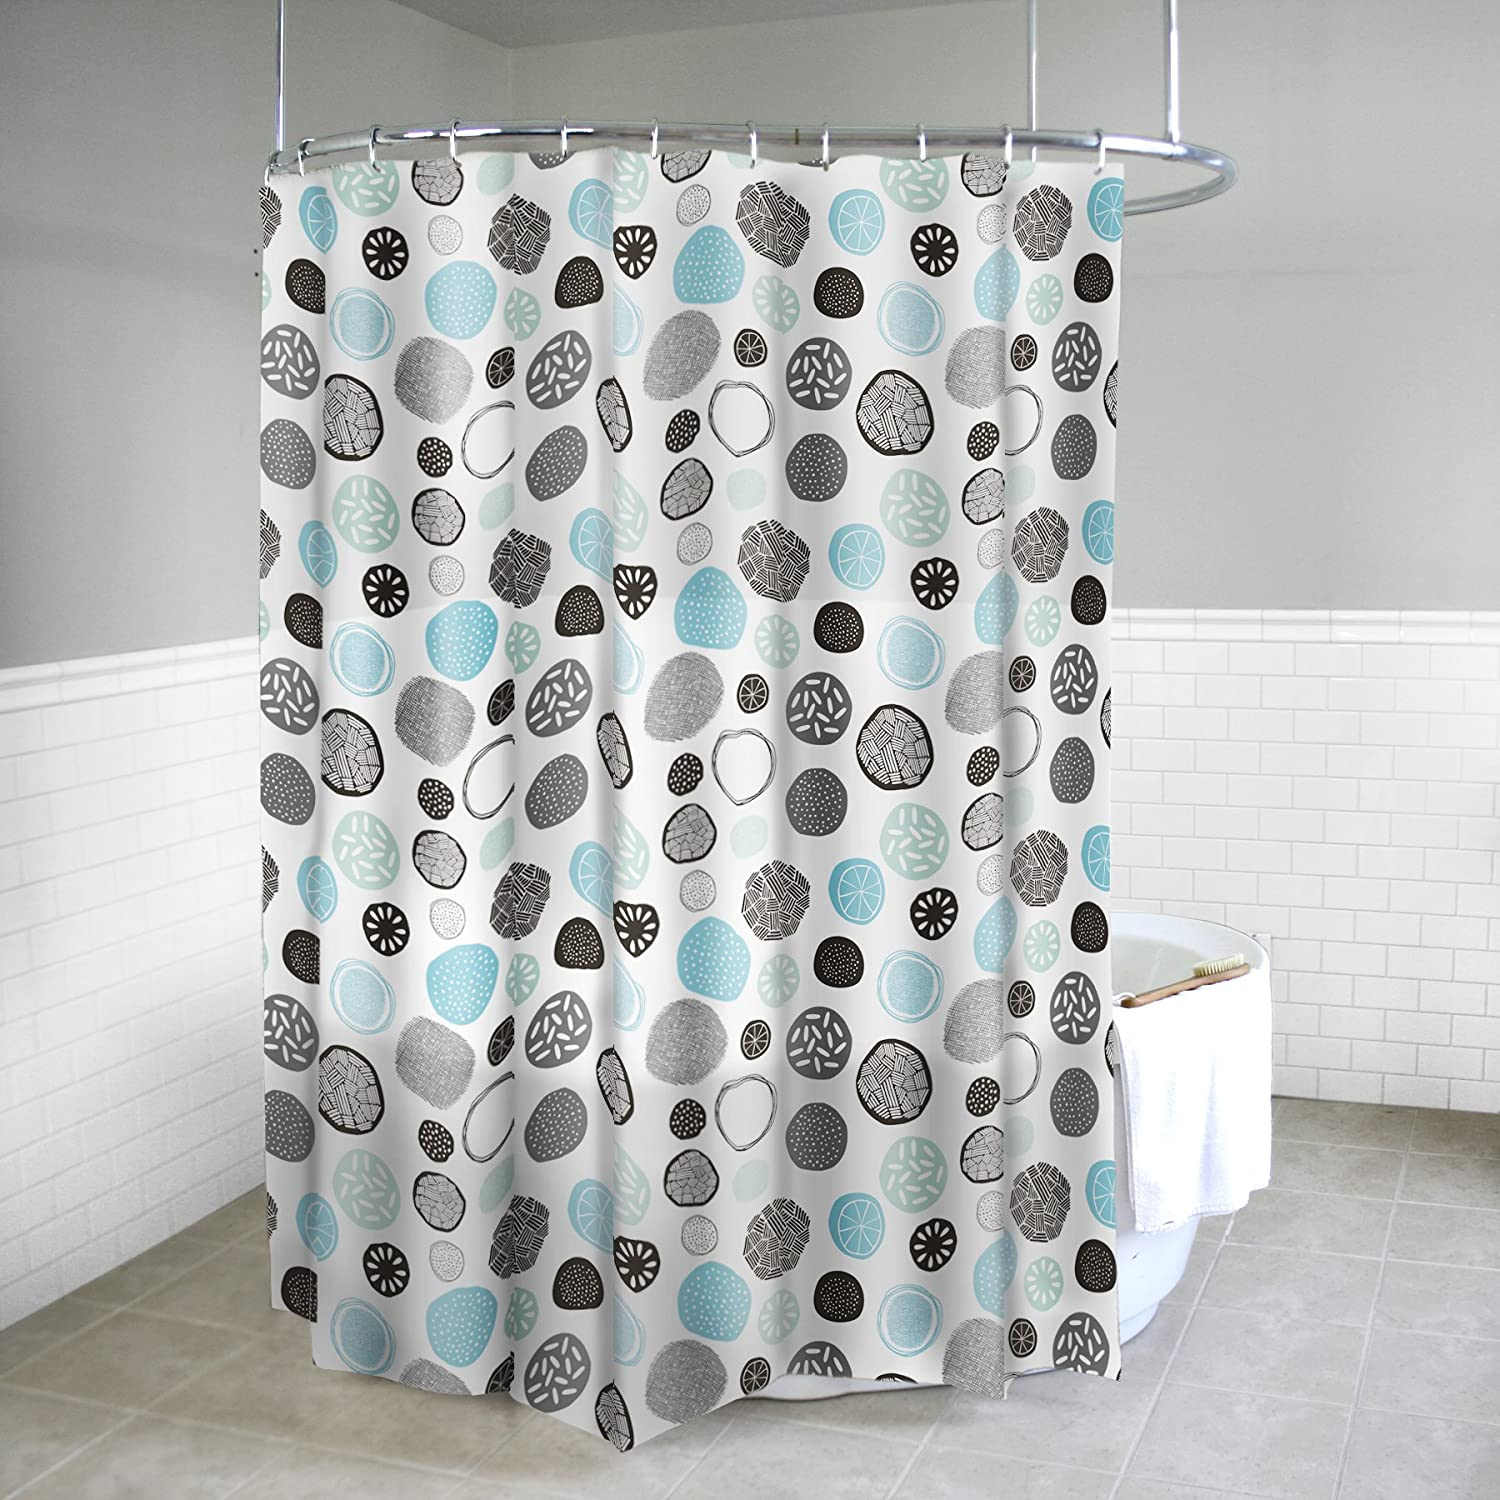 Splash Home PEVA 5G Spek Shower Curtain Liner Design For Bathroom Showers And Bathtubs